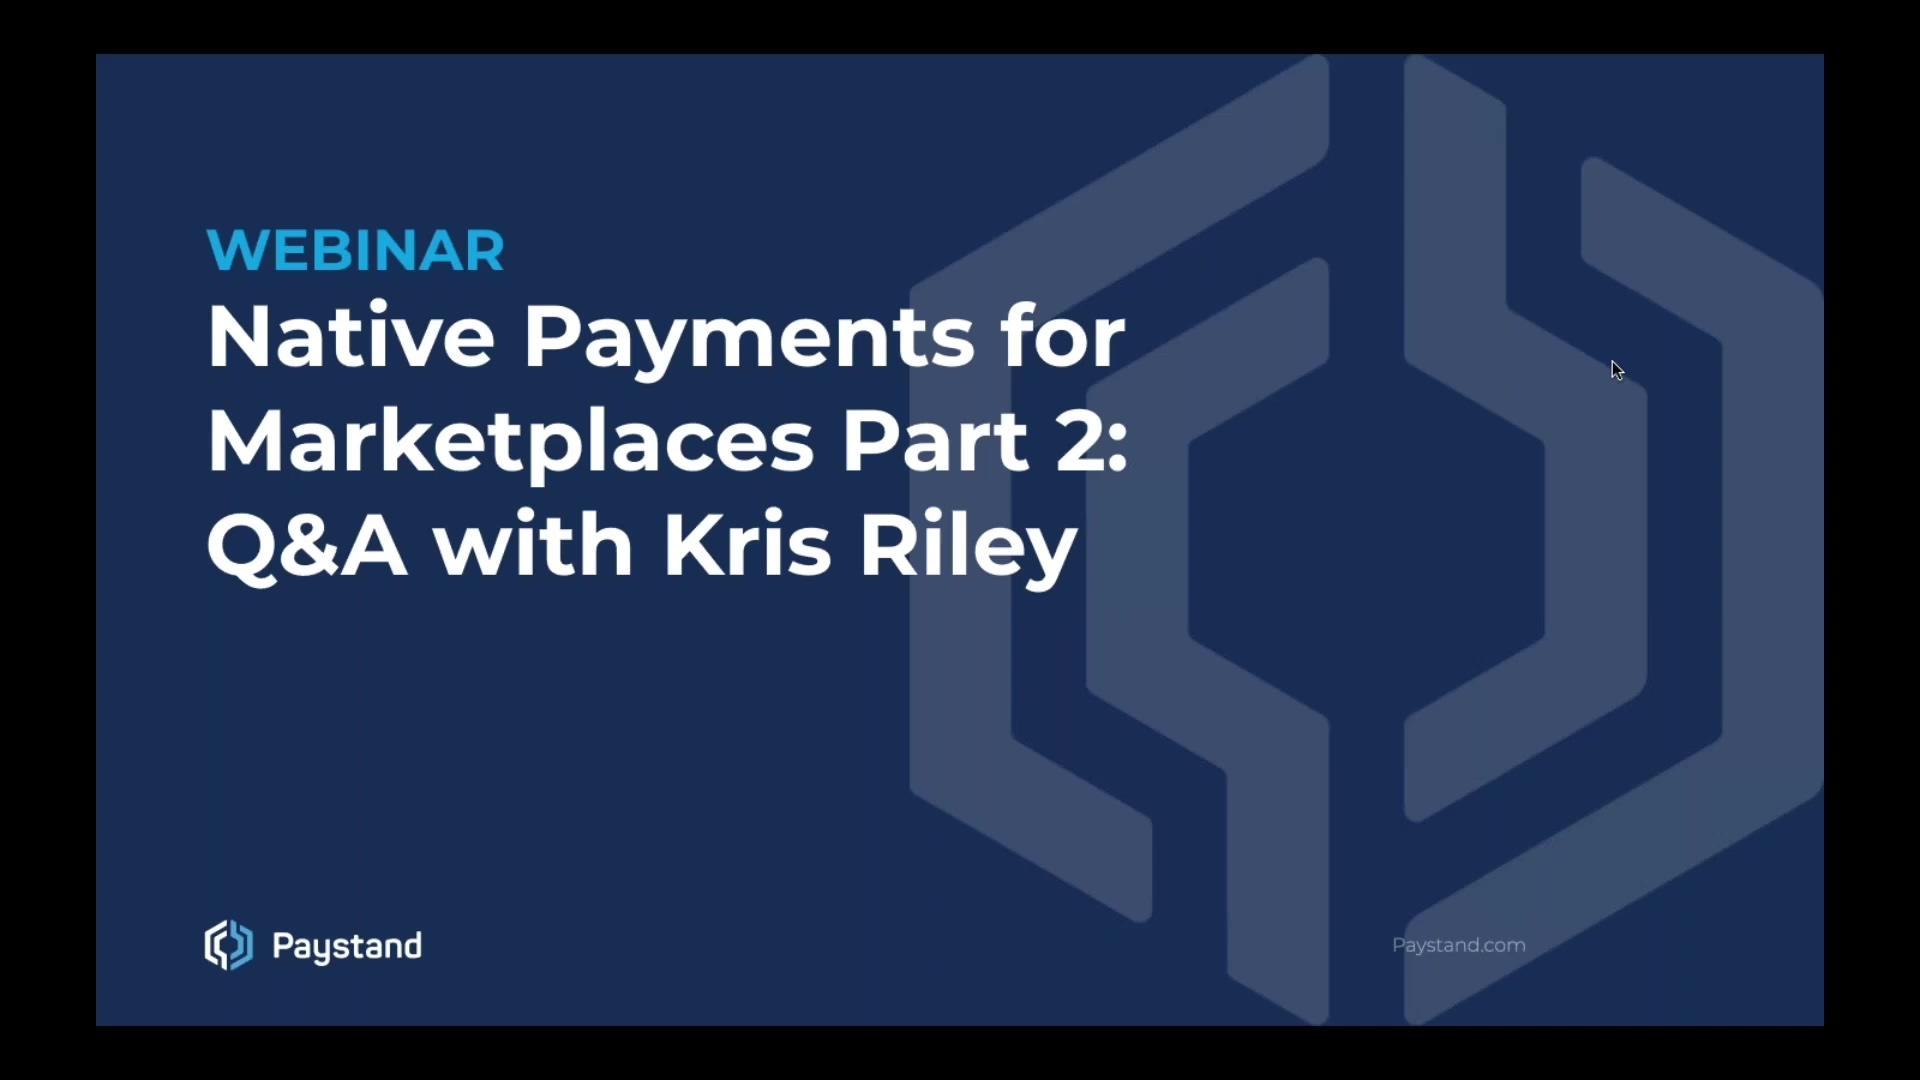 Native Payments for Marketplaces Part 2 Q&A with Kris Riley